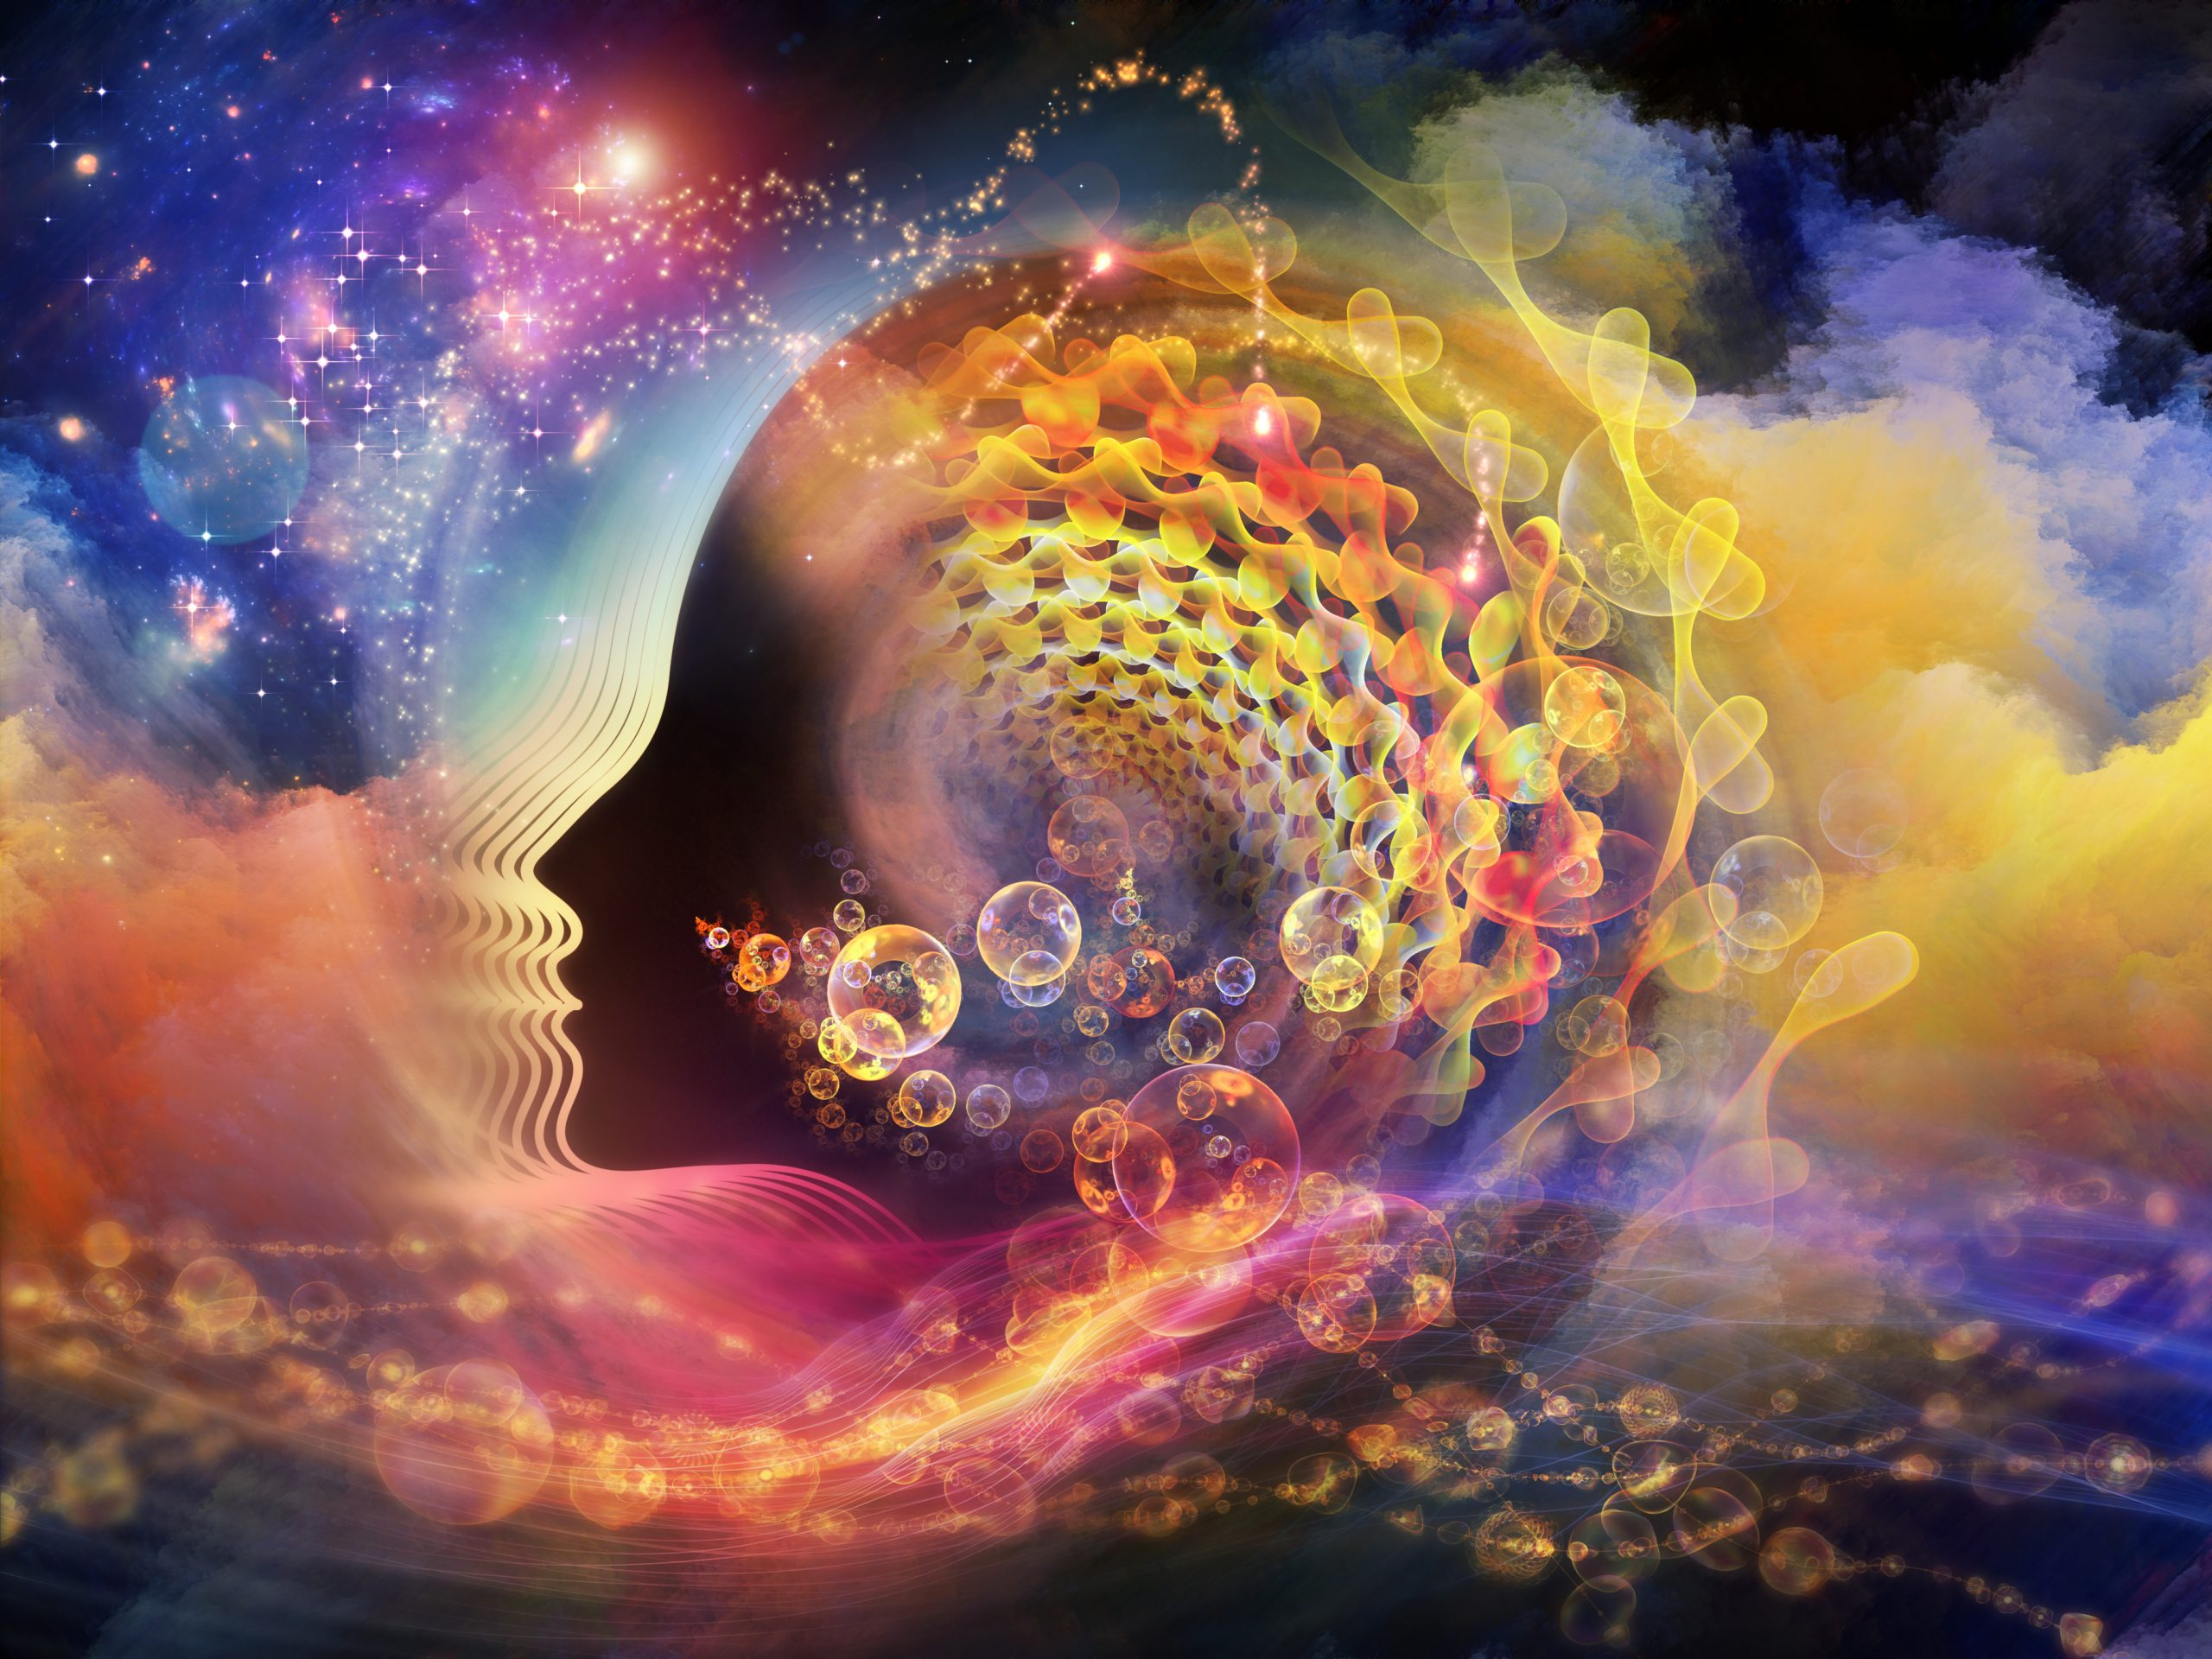 Contact with universal consciousness through the research of human mentality